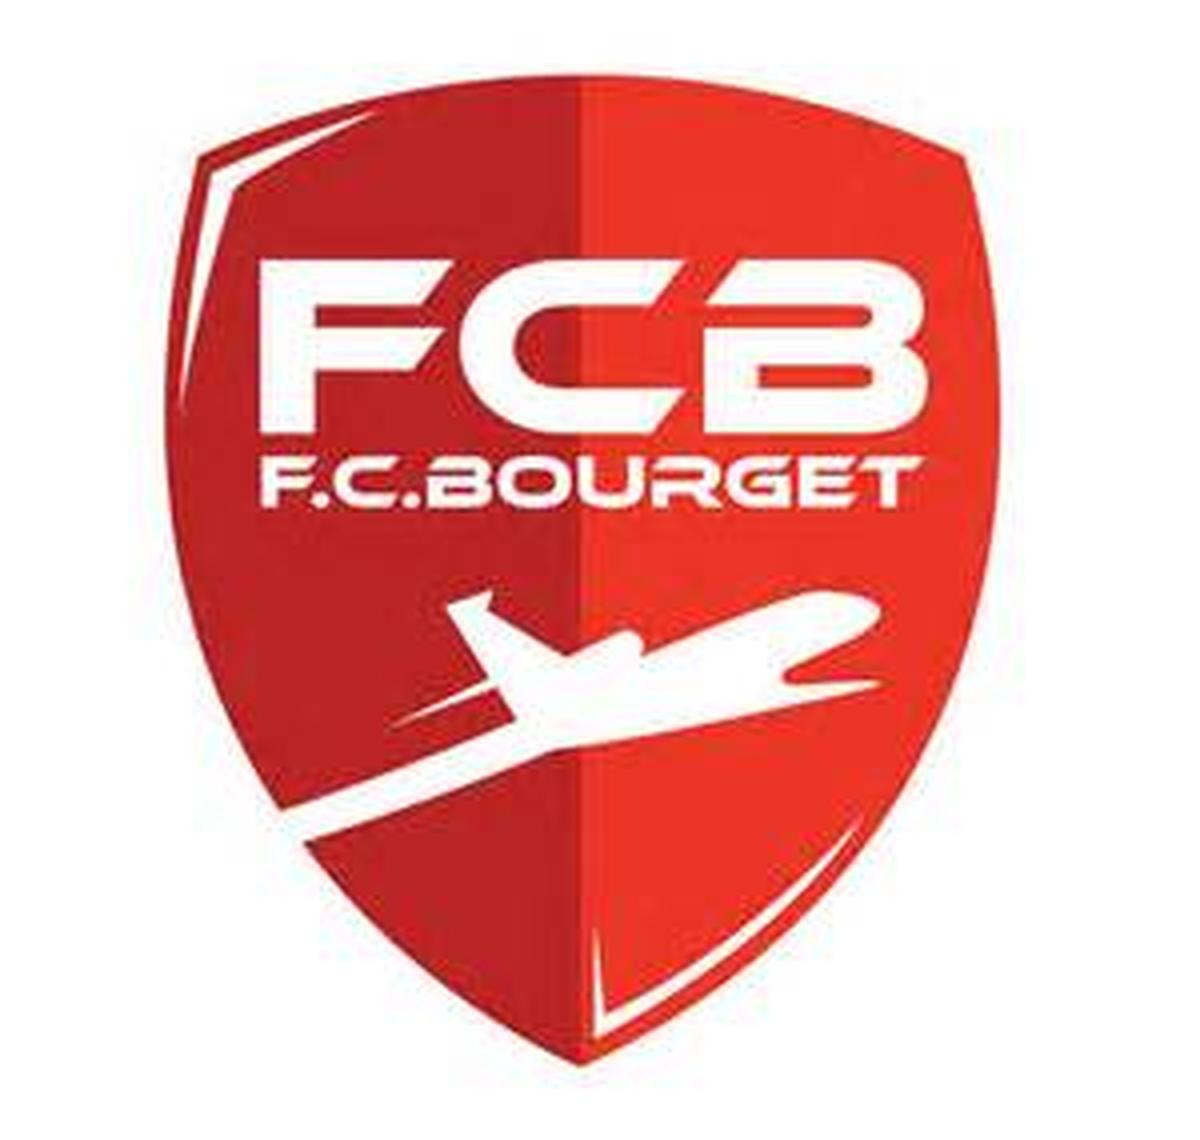 FC BOURGET 2